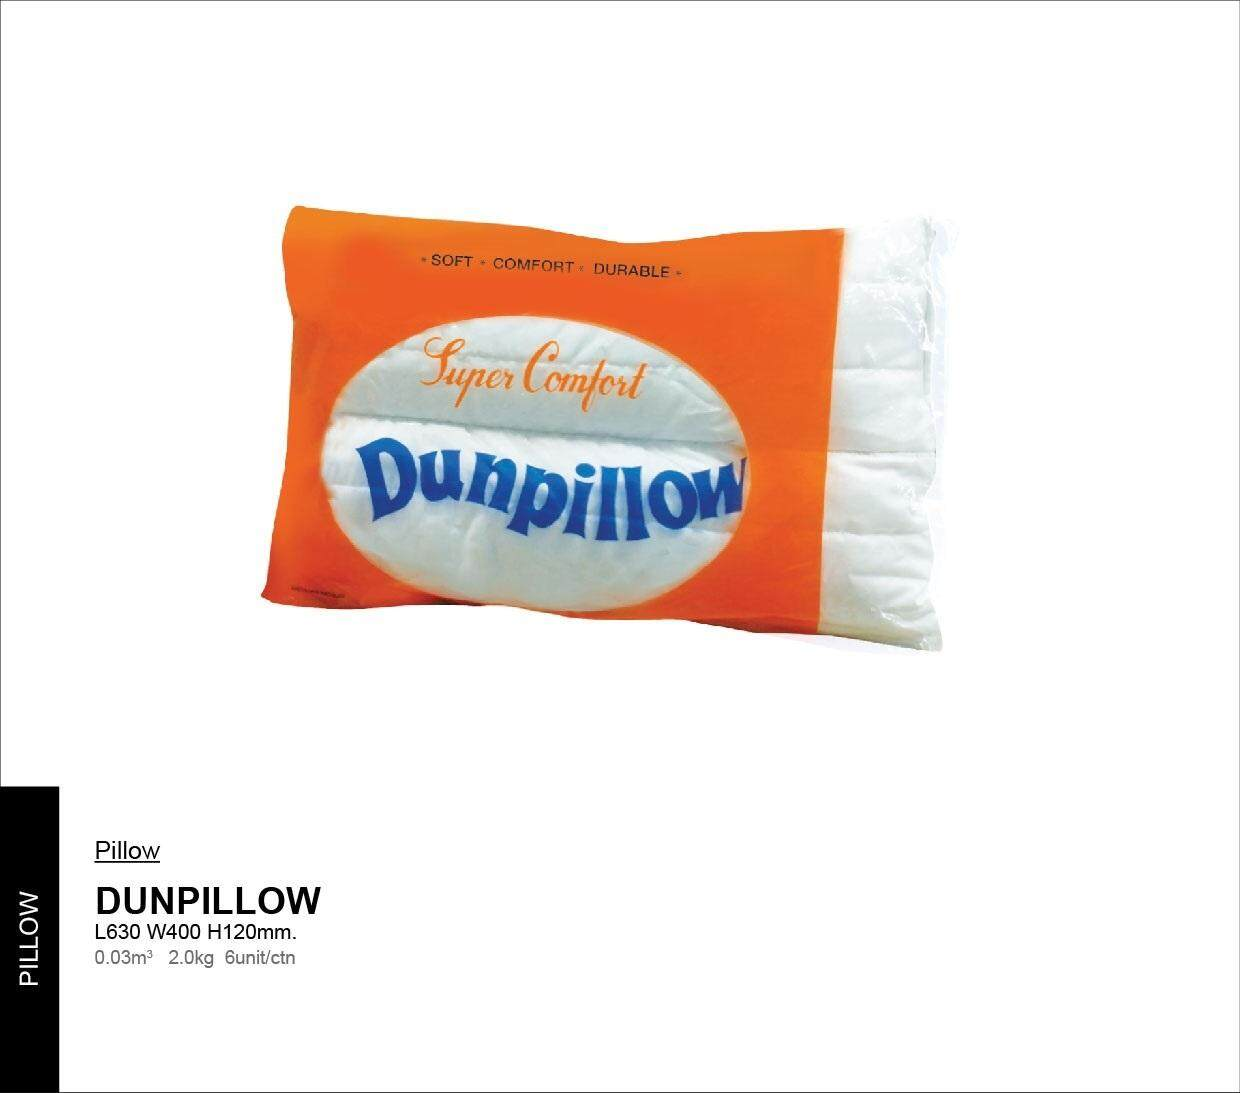 21_pillow_dunpillow.jpg